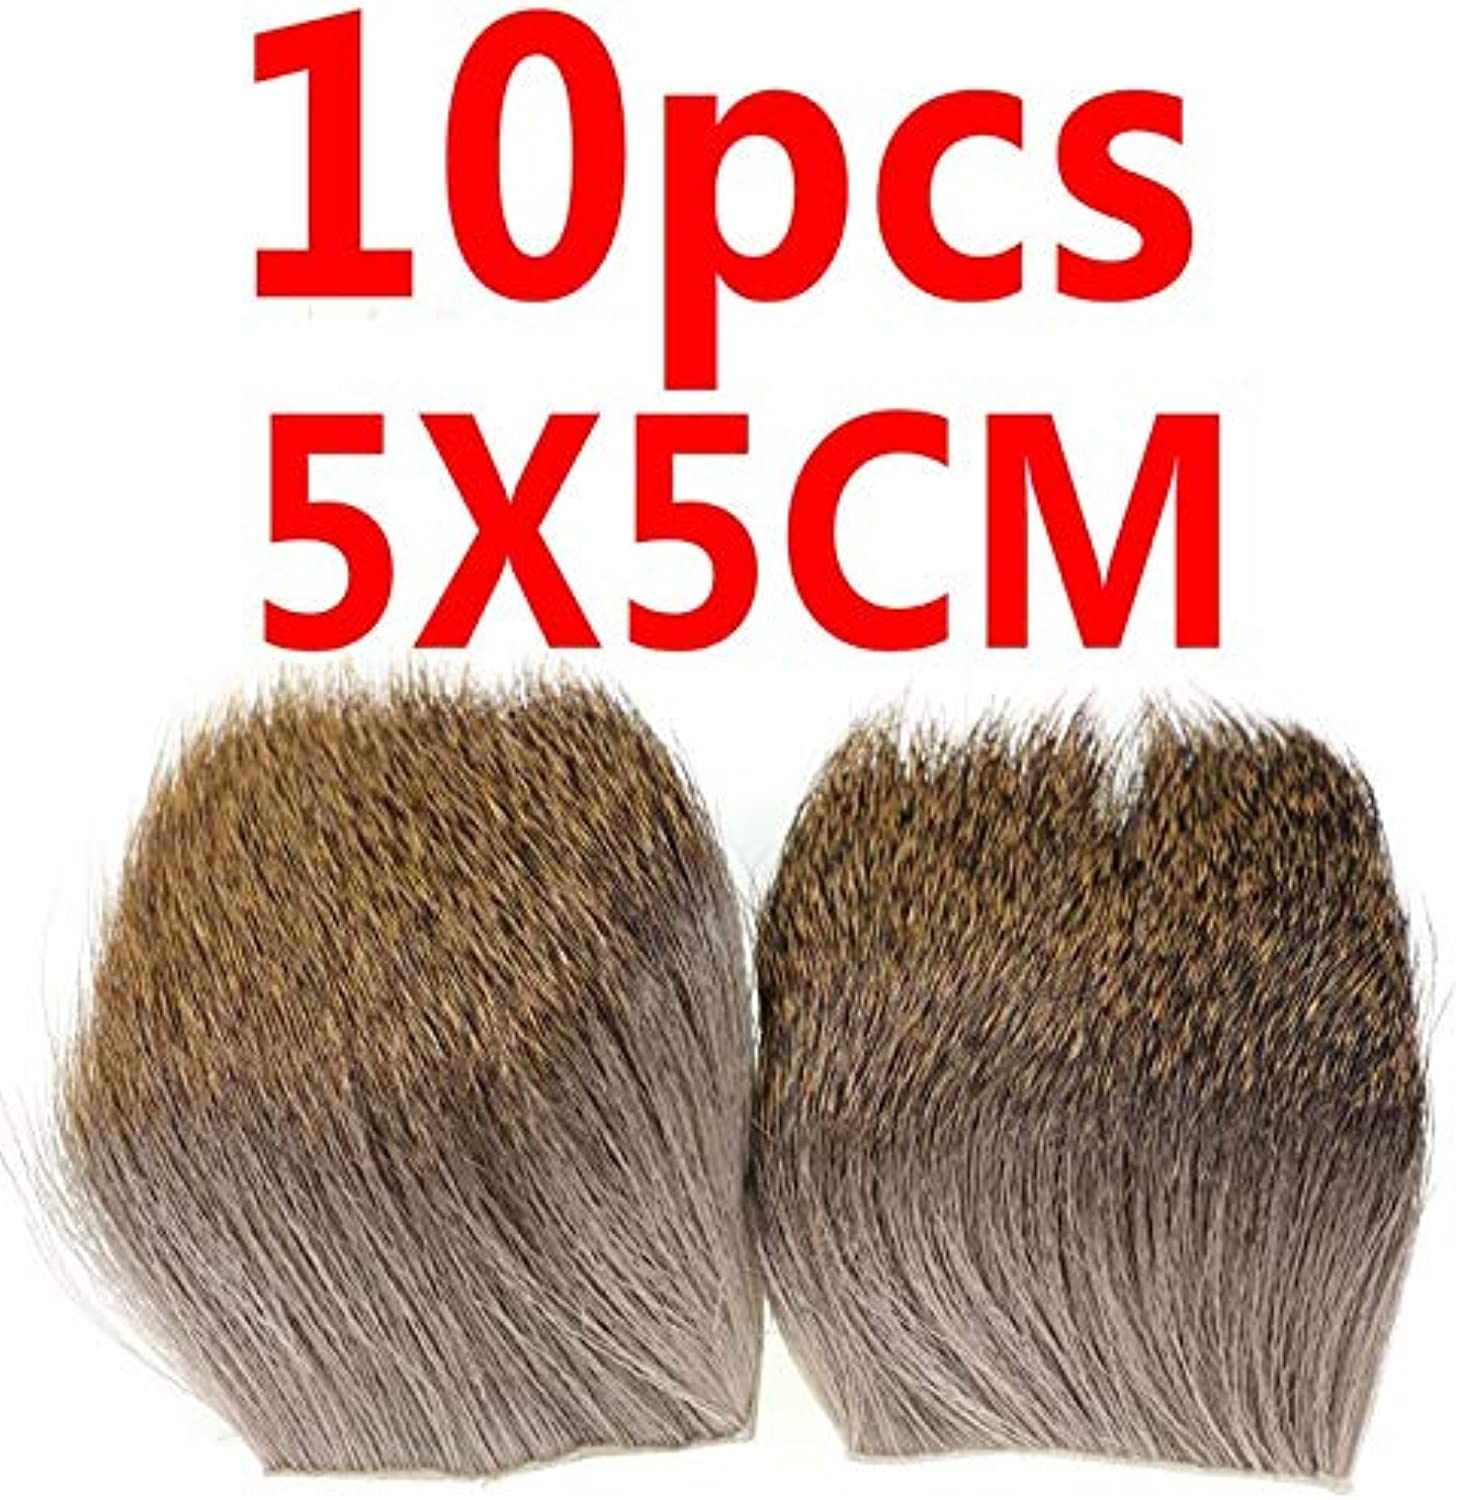 Generic Bimoo 10PCS 5cmX5cm Fly Tying Body Deer Hair Patch Fur Muddler Minnow Dry Elk Hair Caddis Fly Tying Wing Material Natural color 10PCS Random